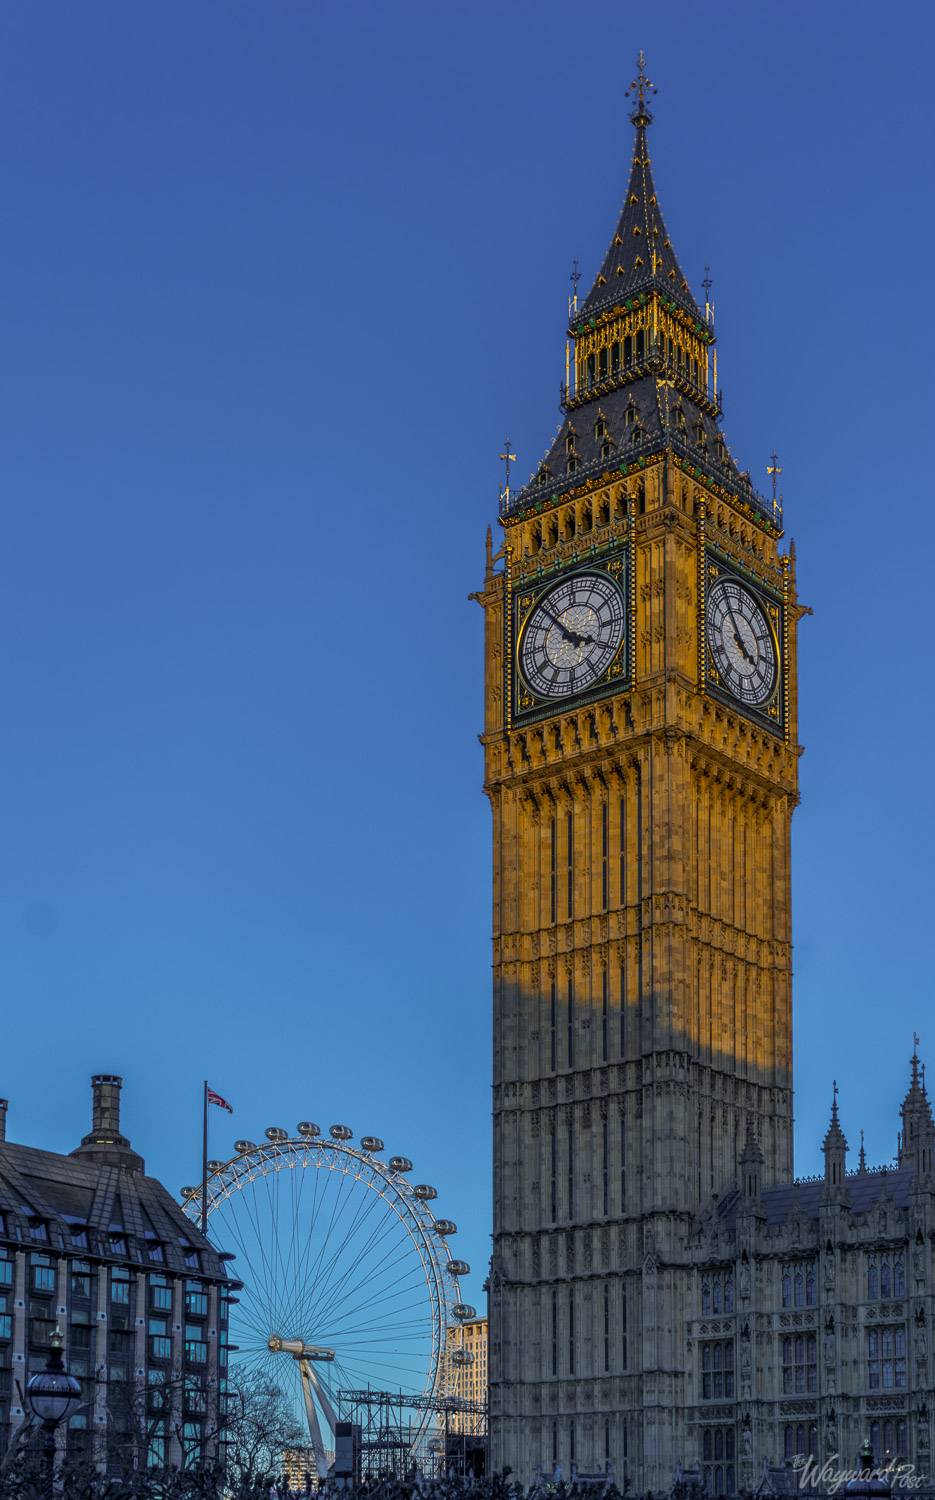 Big Ben, Westminster and the London Eye. Photo by Zygmunt Spray.